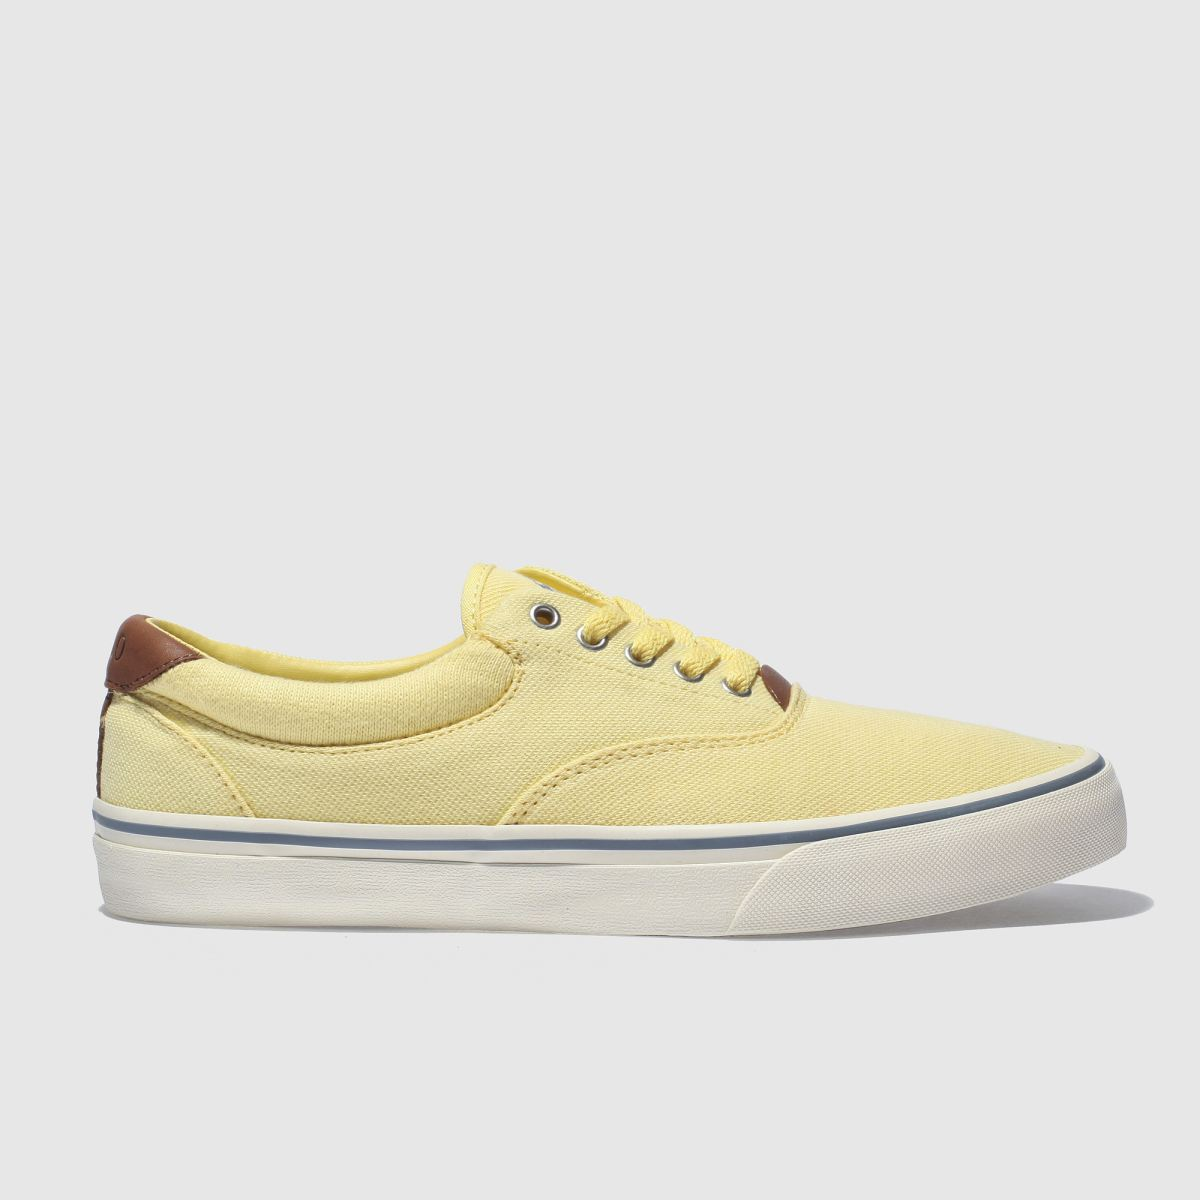 Polo Ralph Lauren Yellow Thorton Ii Shoes